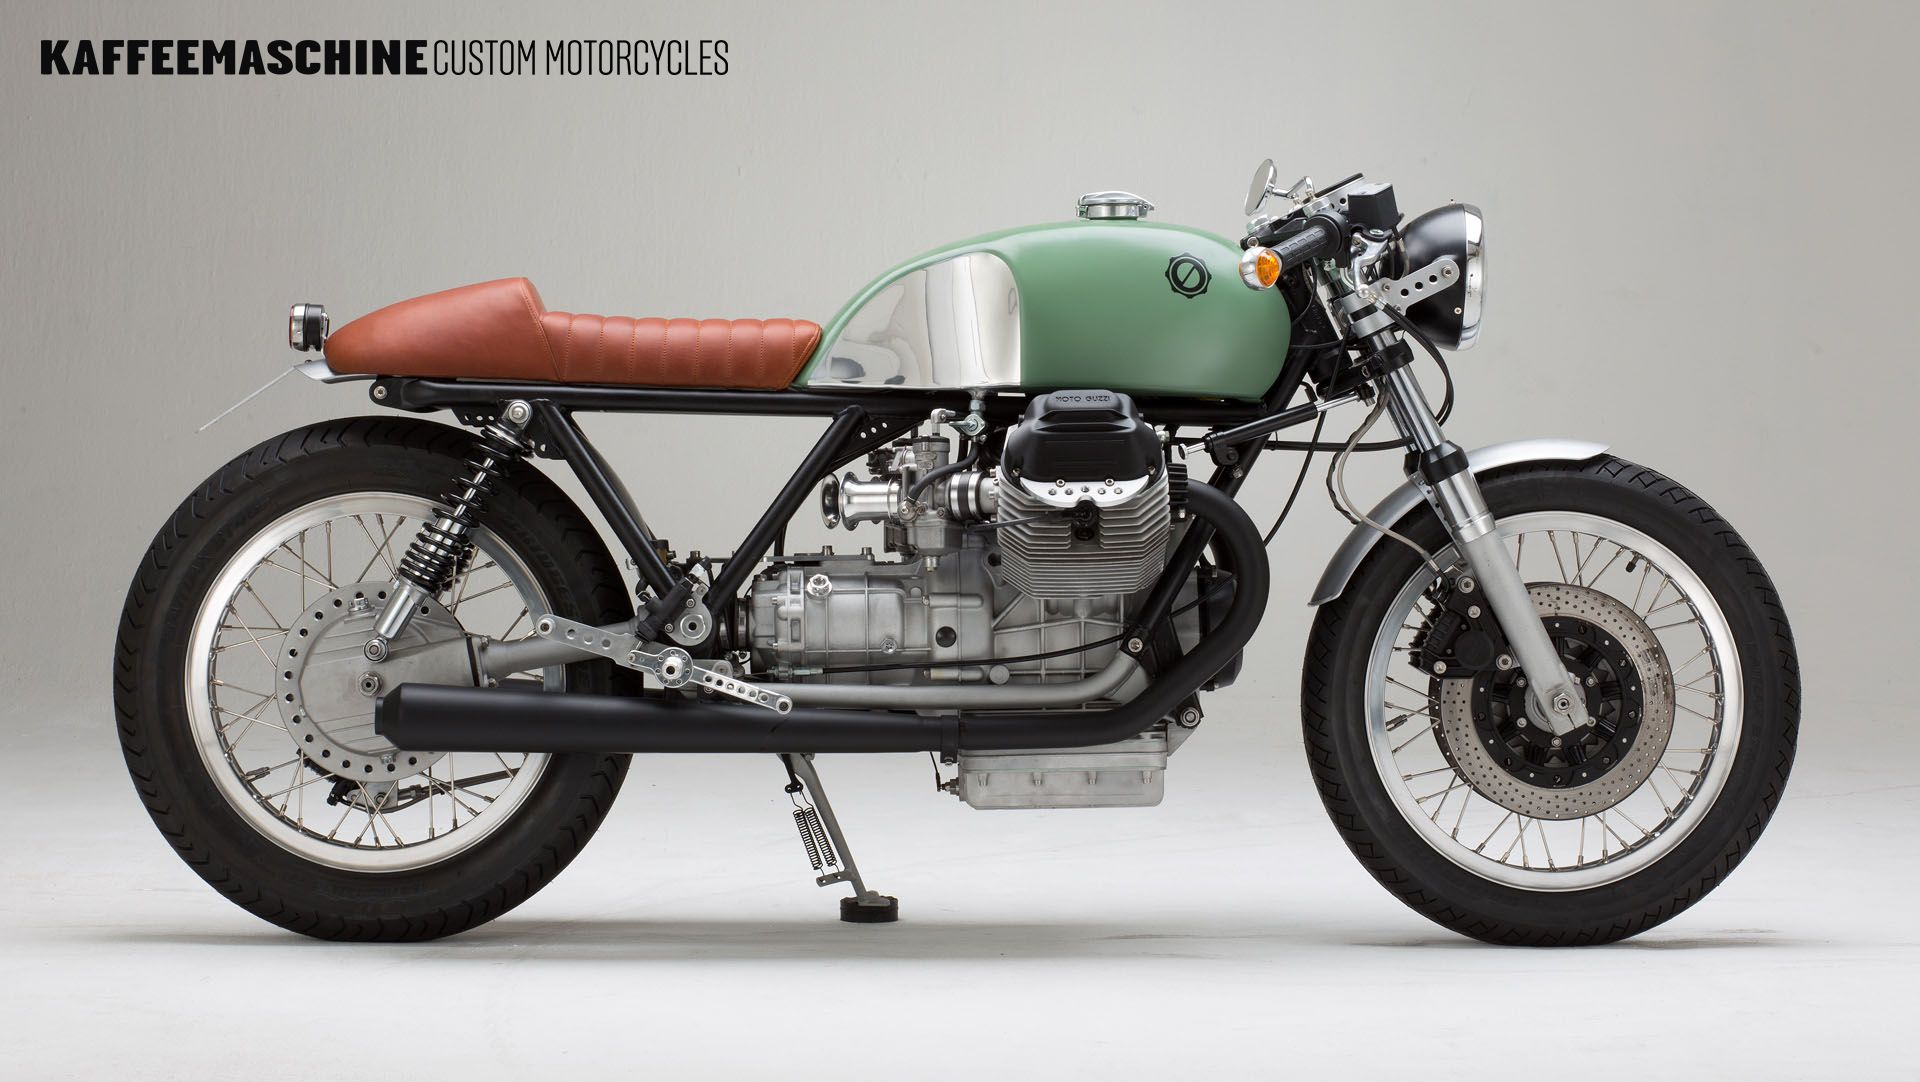 Moto Guzzi Le Mans 3 Cafe Racer By Kaffeemaschine Follow The Link For A Video Of The Bike Bike Cafera Moto Guzzi Cafe Racer Moto Guzzi Cafe Racer Motorcycle